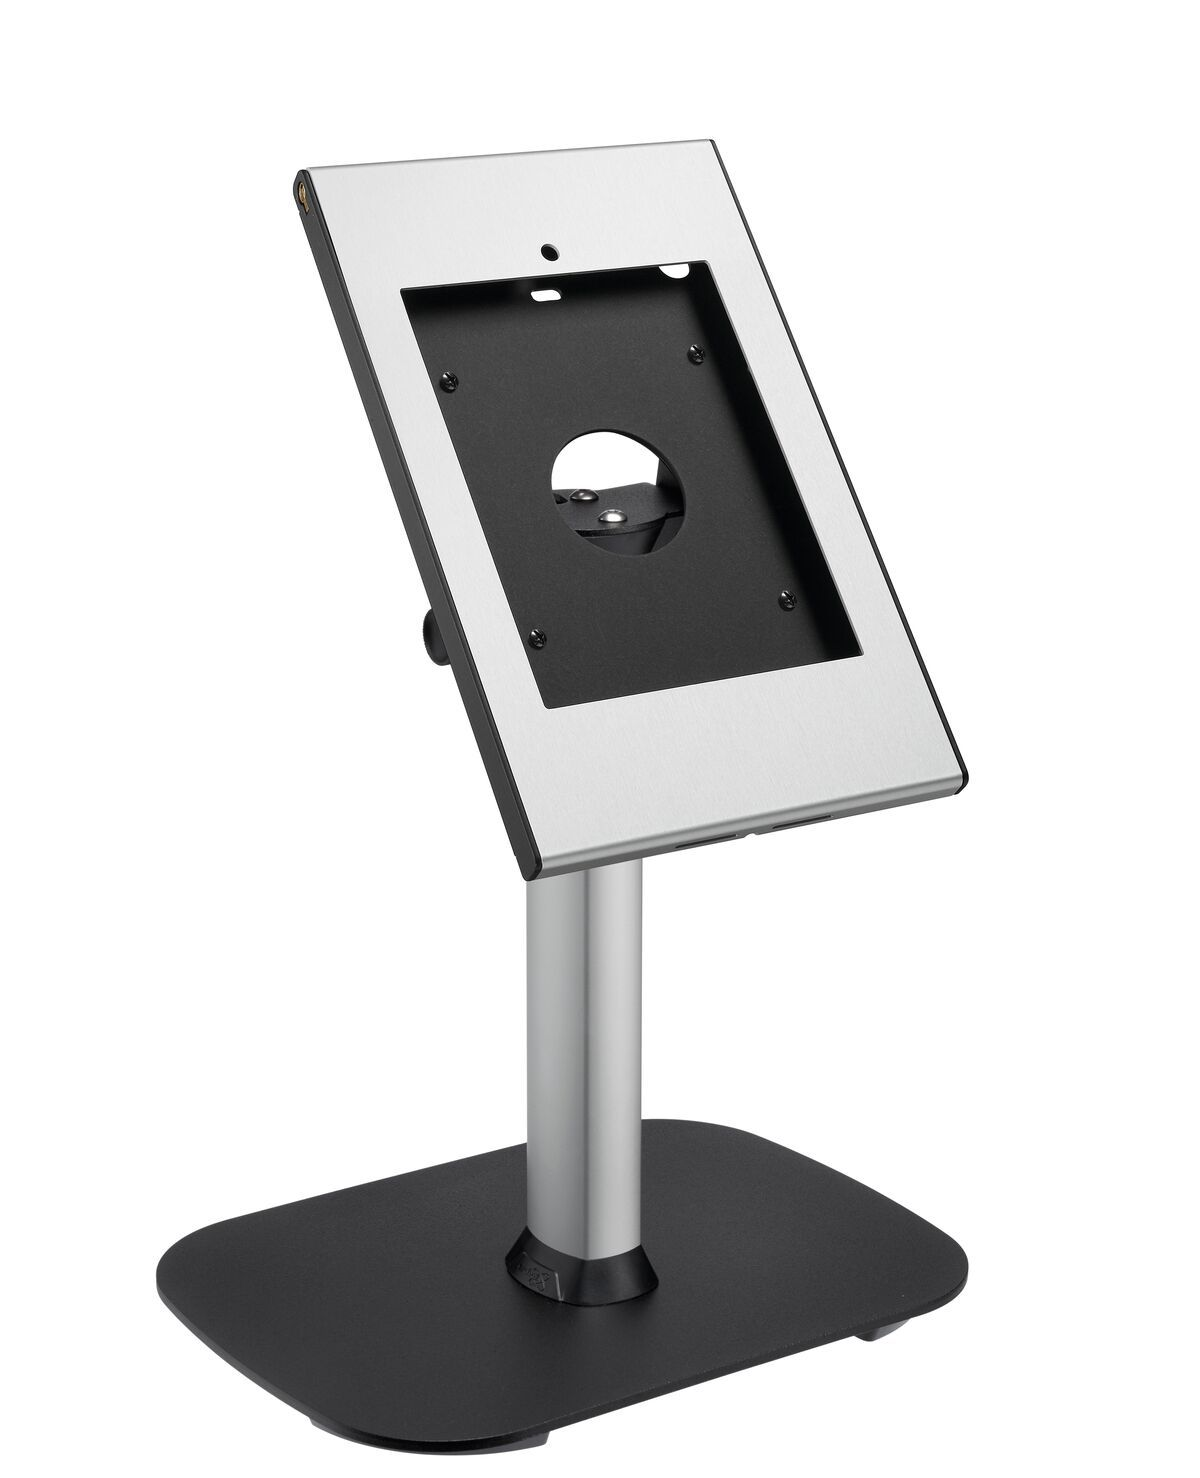 Vogel's PTS 1226 TabLock für iPad mini (2019) HTV - Application